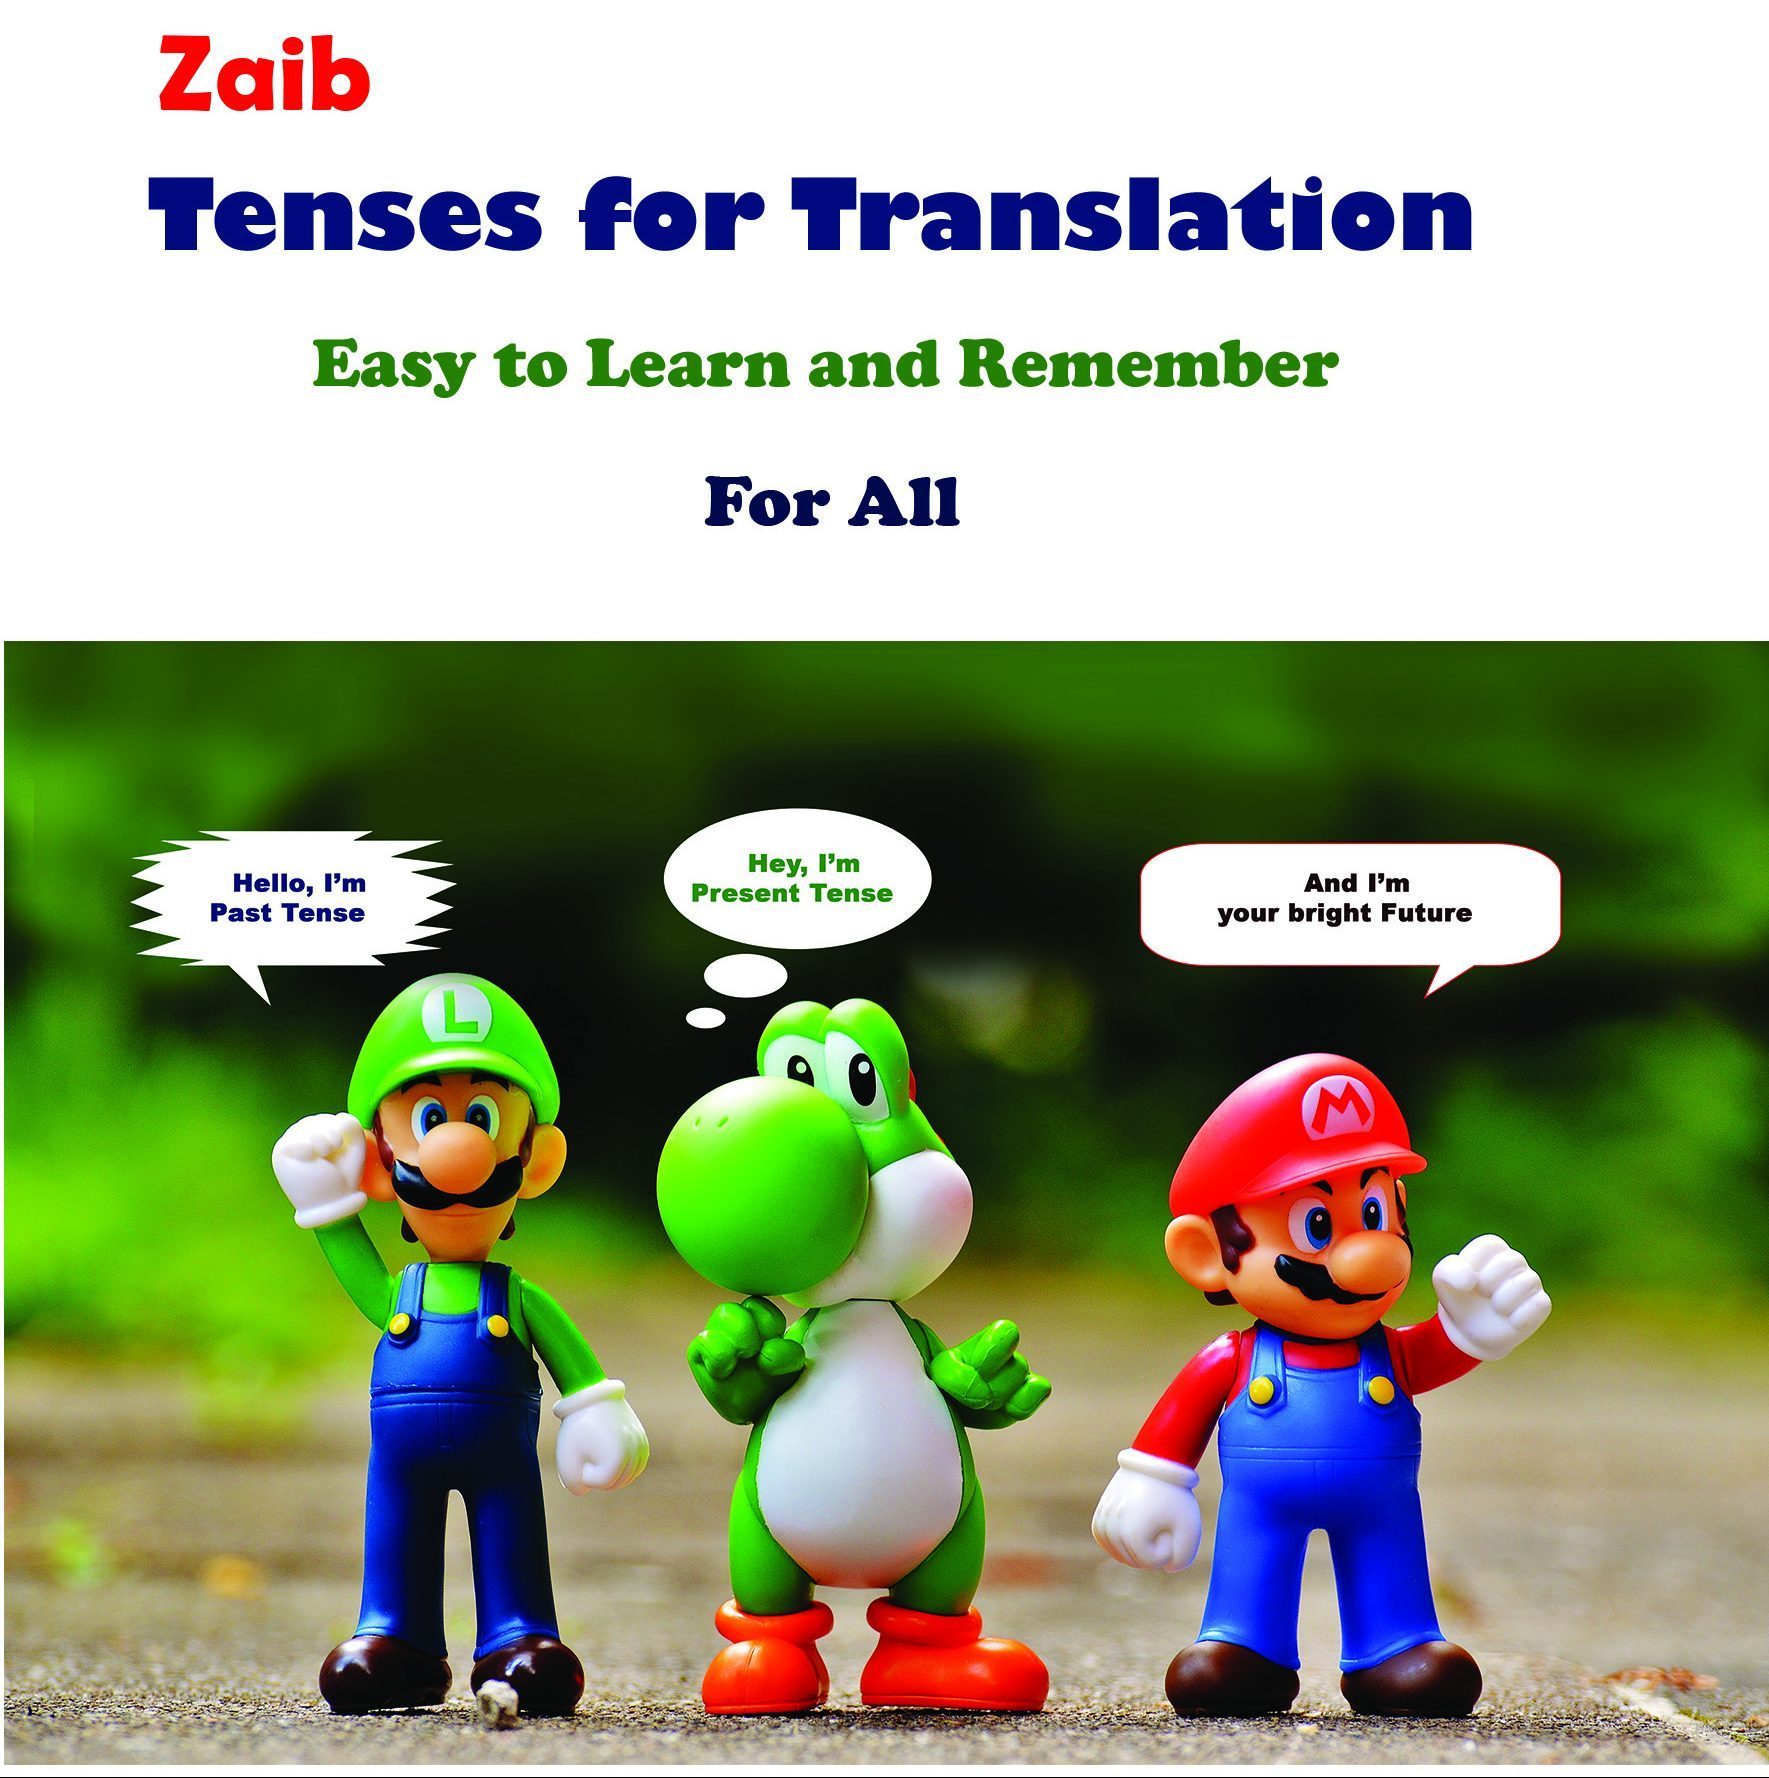 Learn to translate from Urdu into English – Join for Free for 15 Days